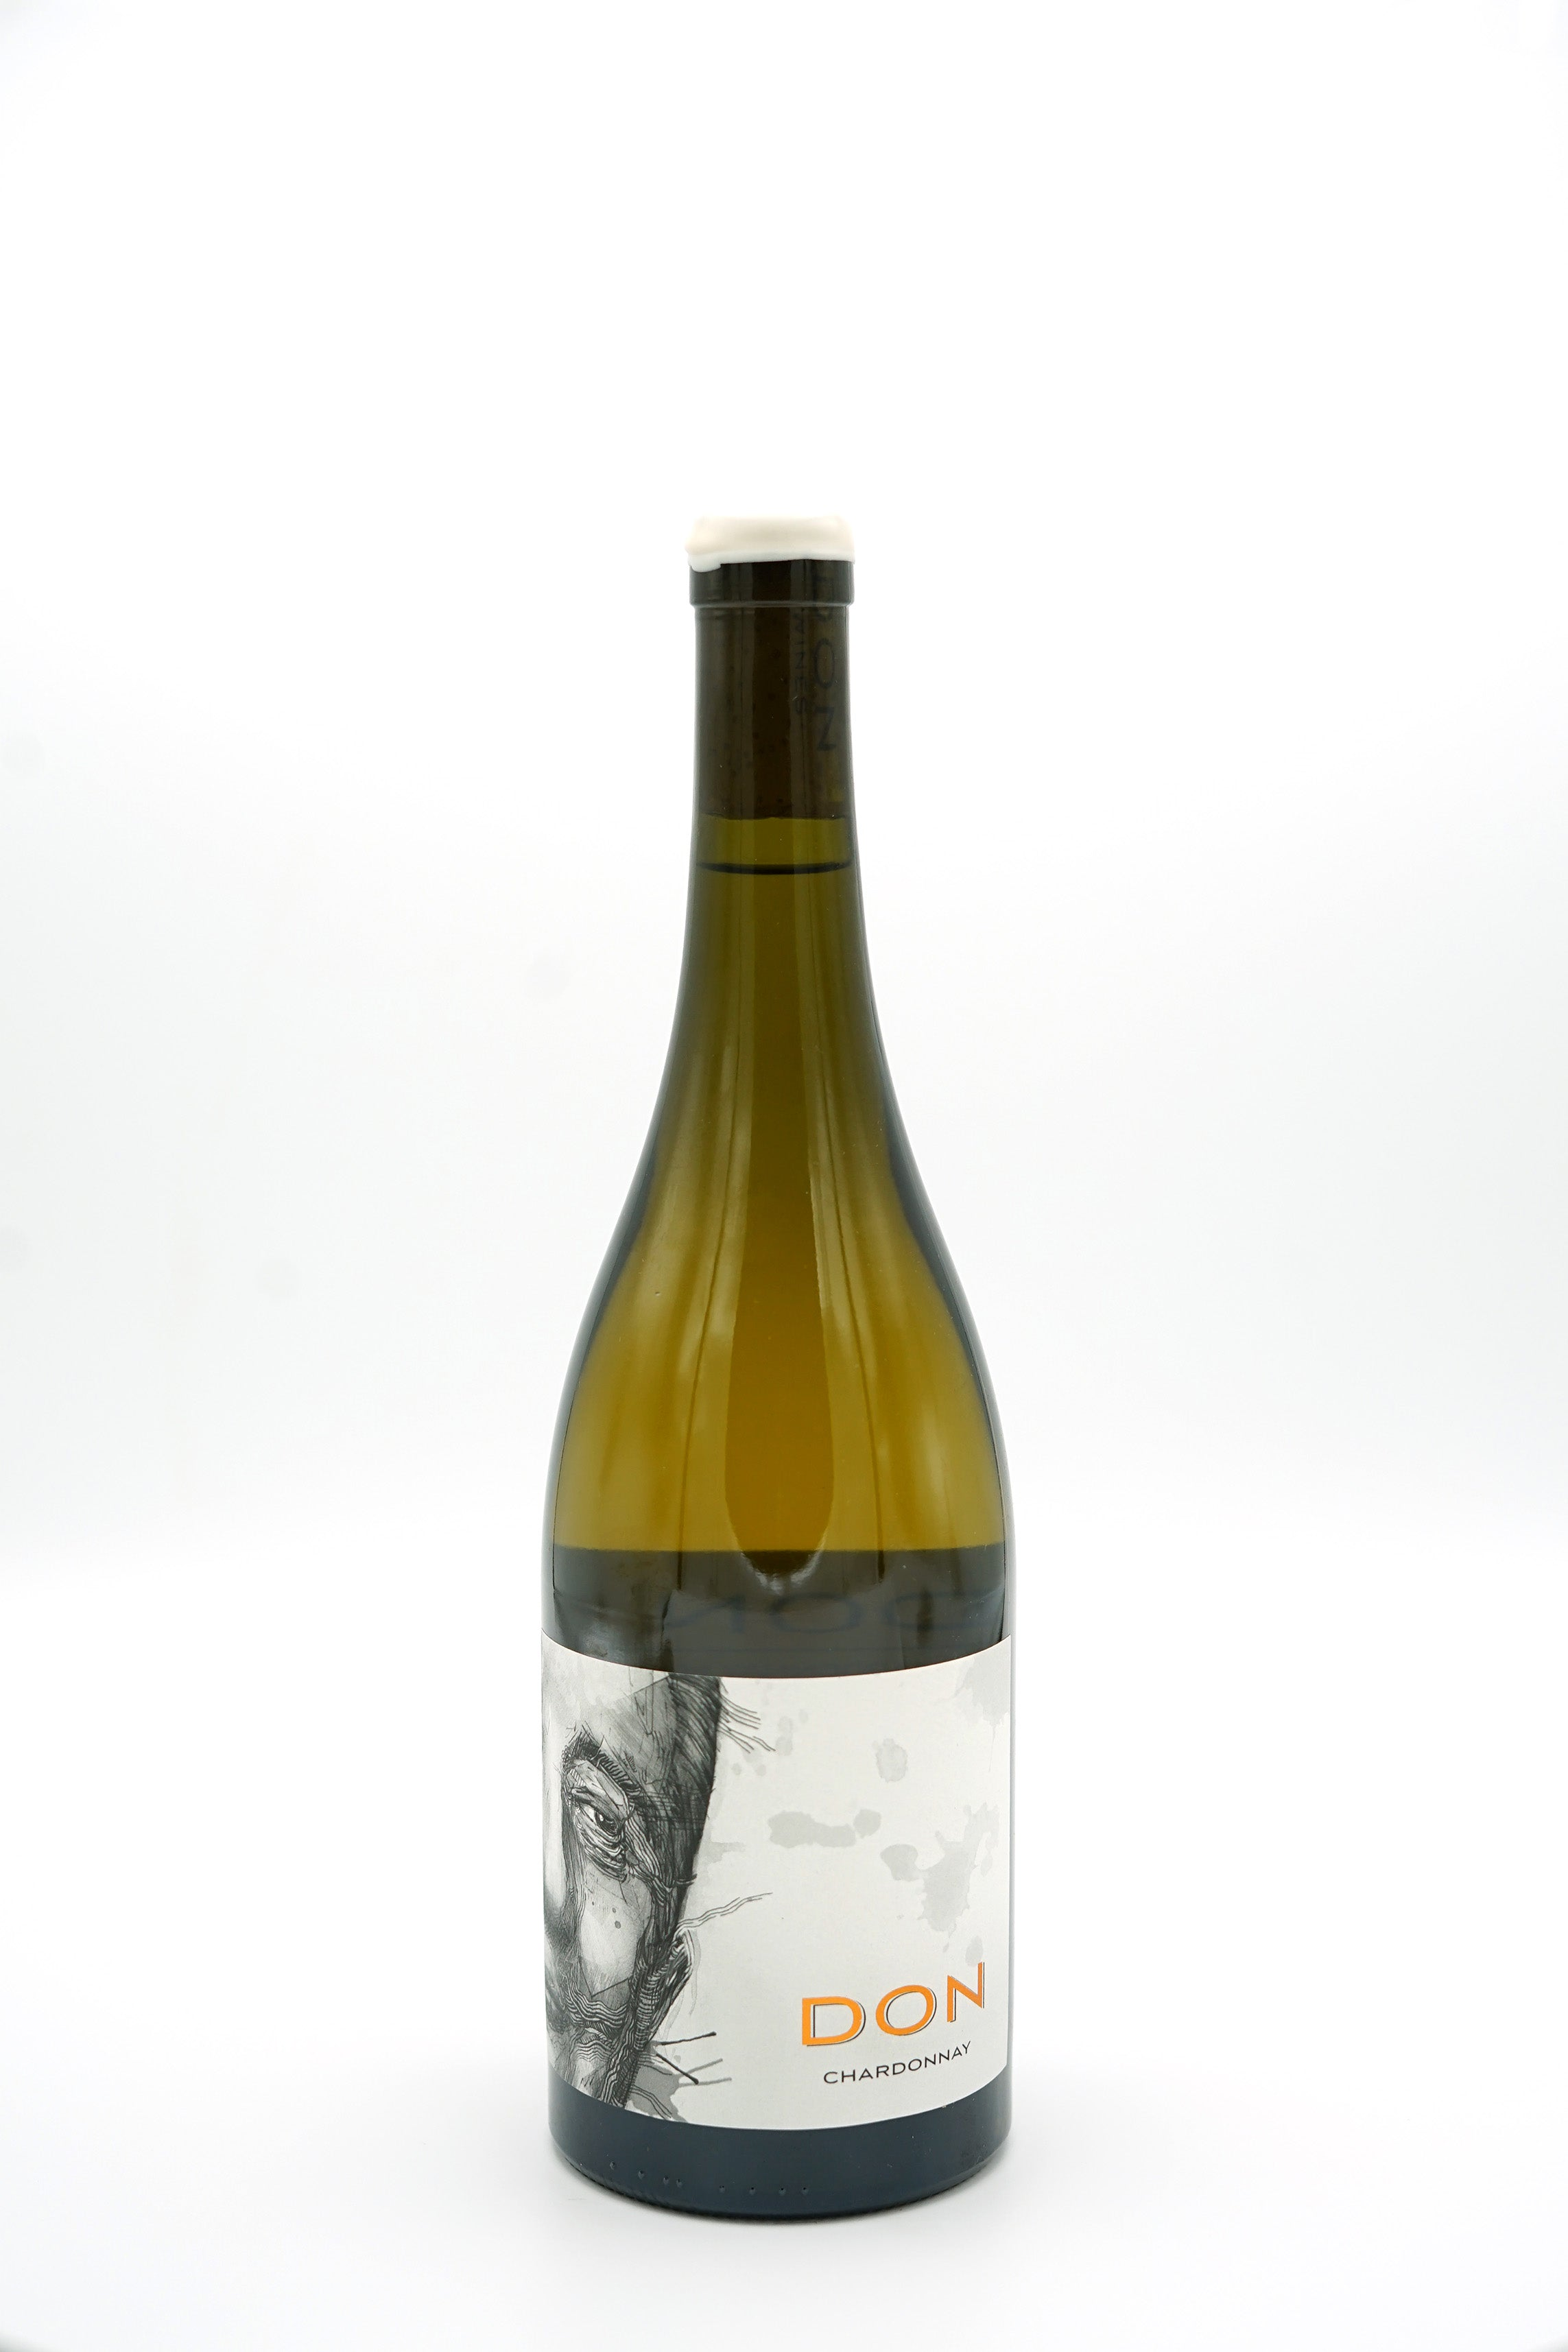 DON Top Block Chardonnay 2018 - Alex Craighead Wines